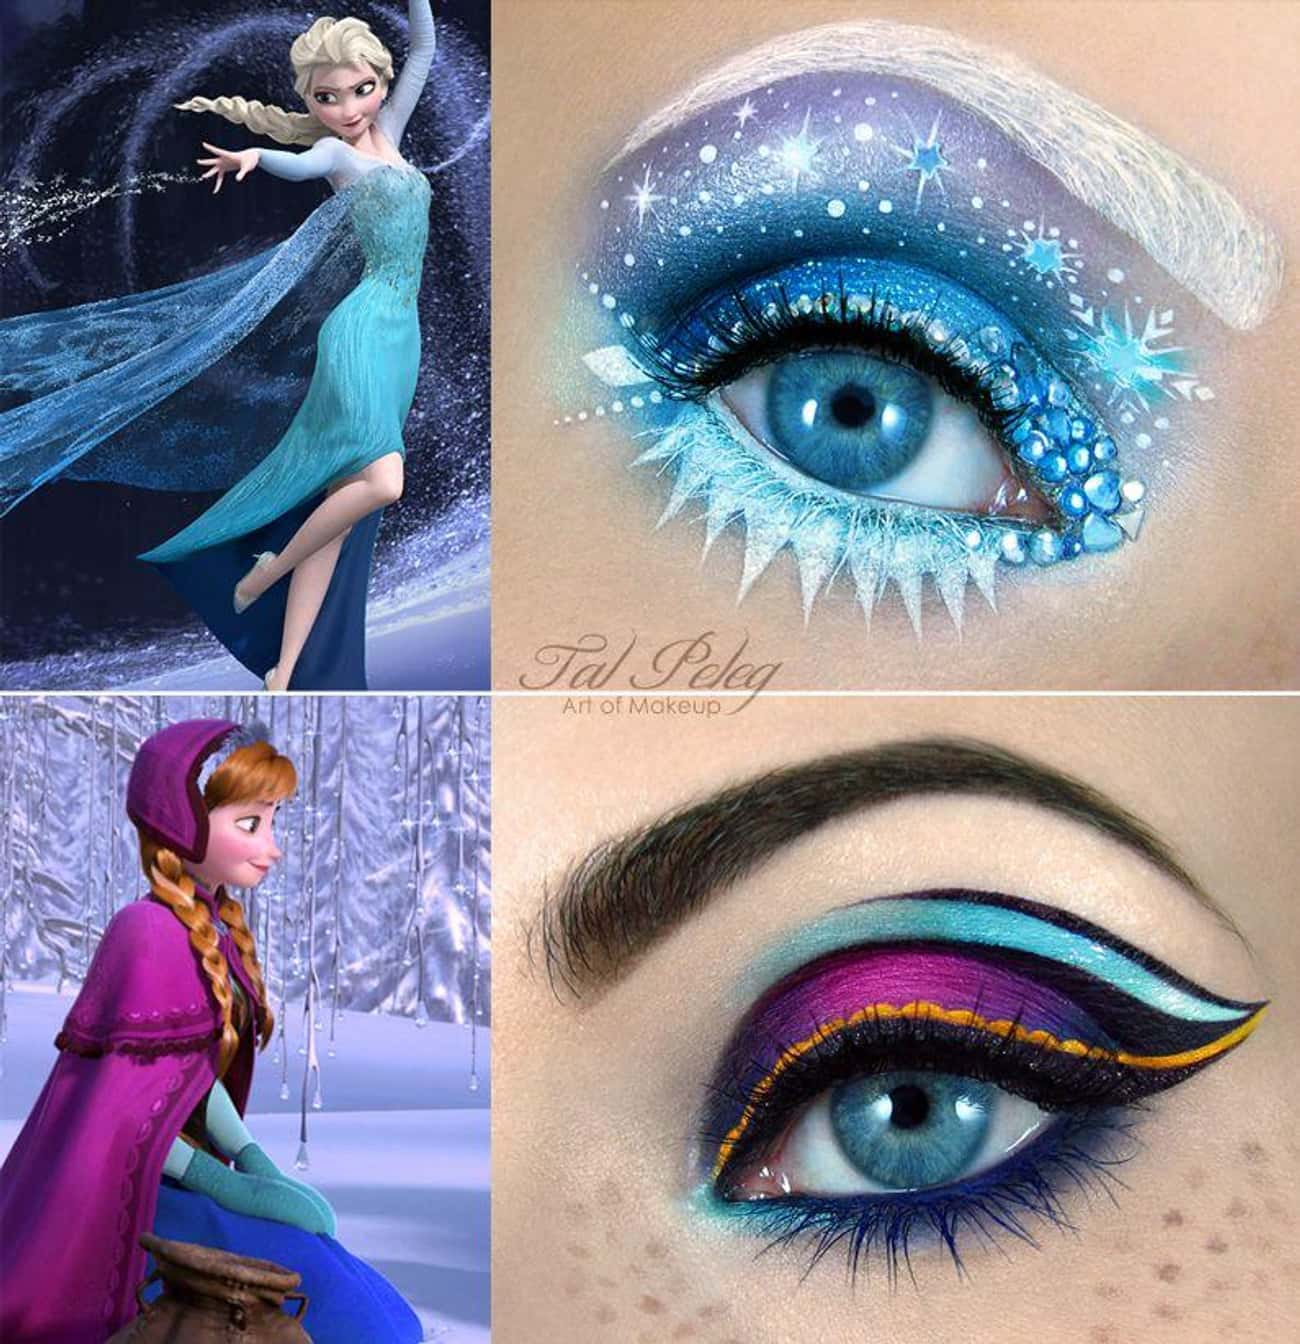 Anna And Elsa From Frozen is listed (or ranked) 2 on the list Disney Makeup That's Beyond Magical